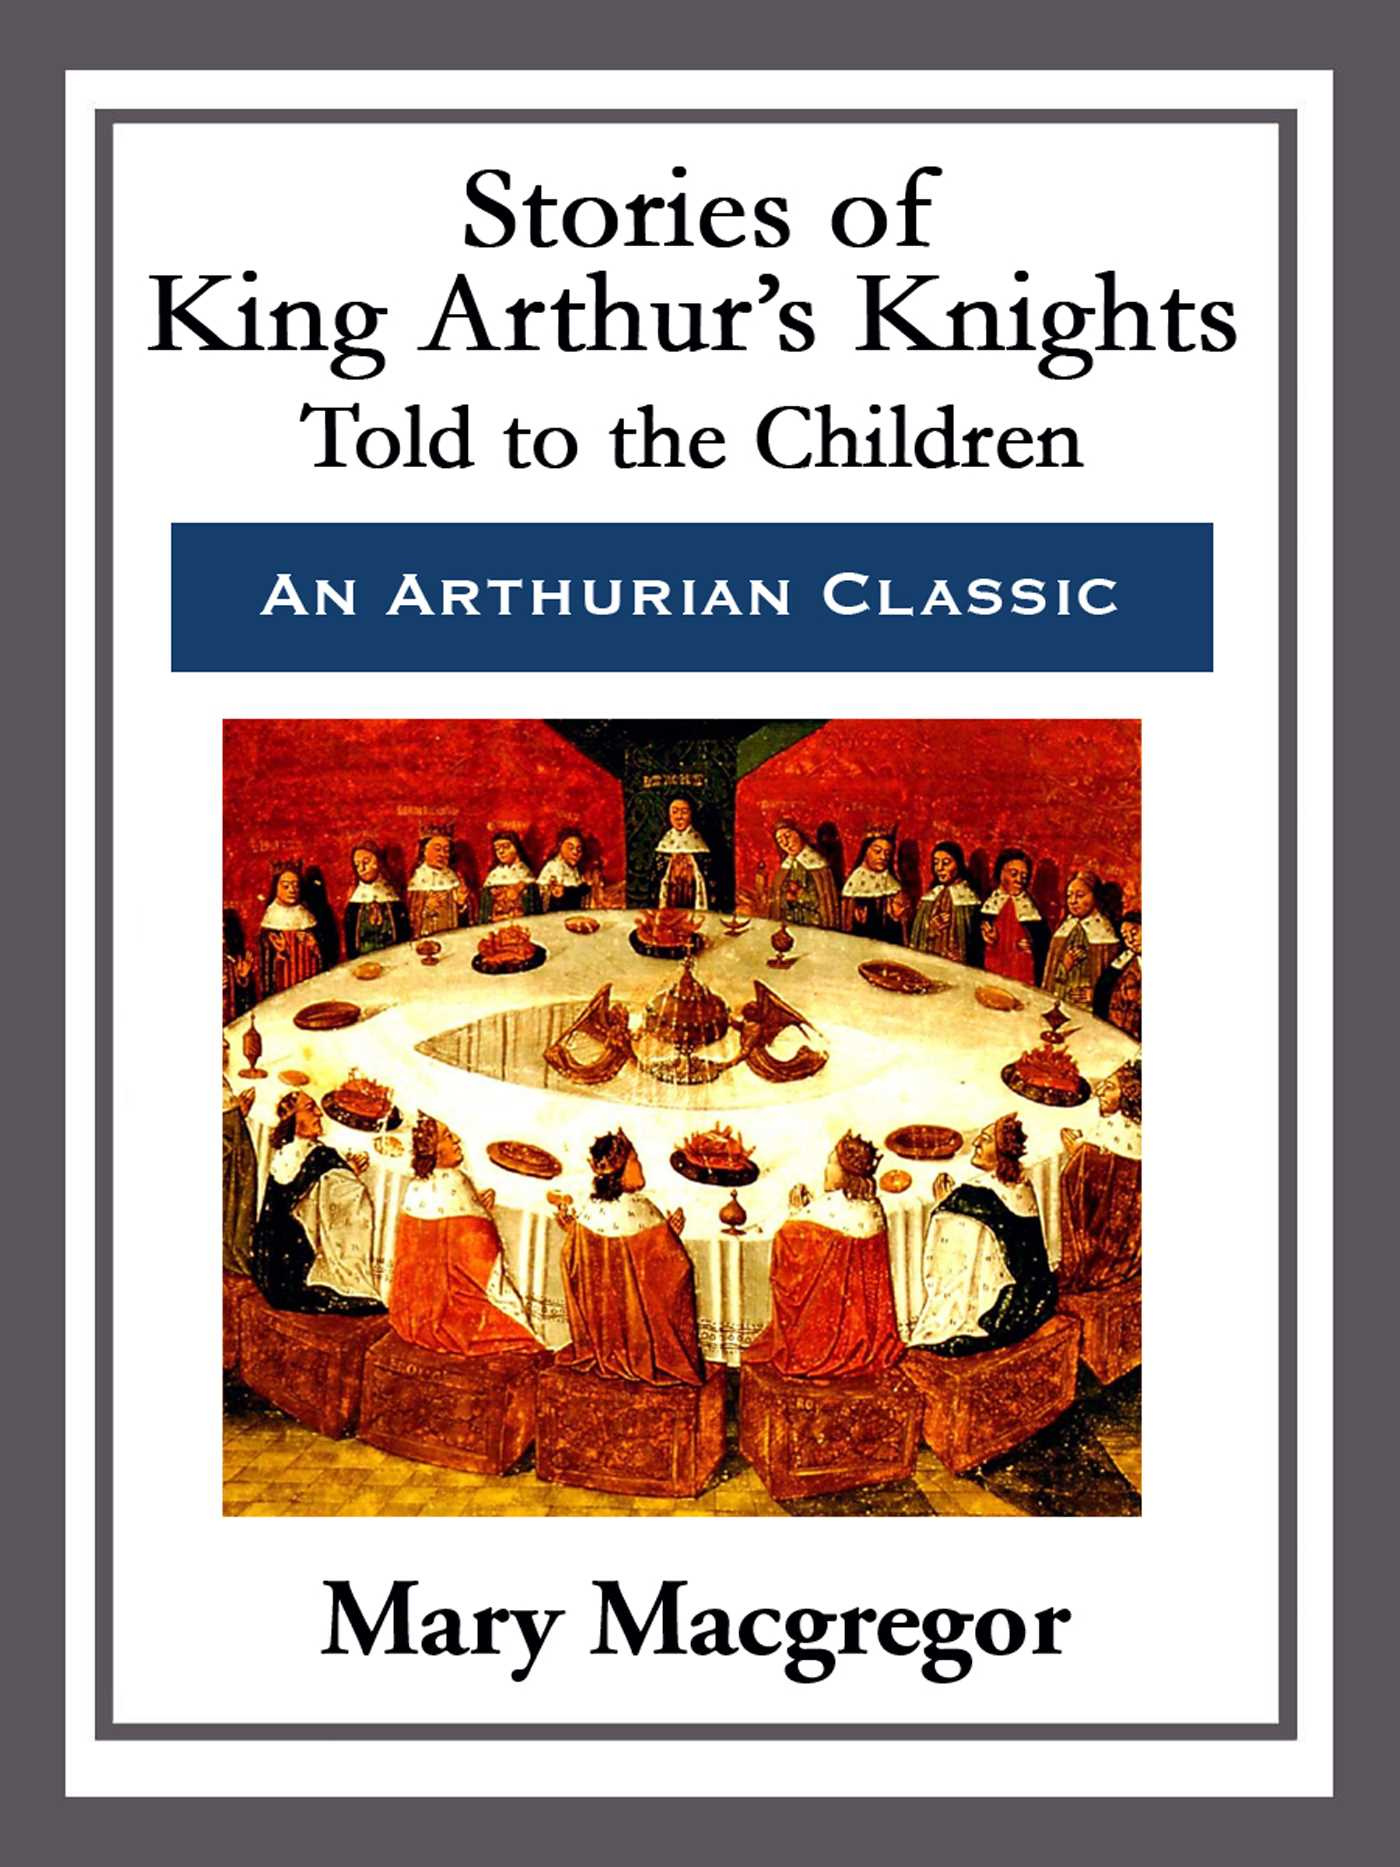 Stories of king arthur s knights 9781682991916 hr